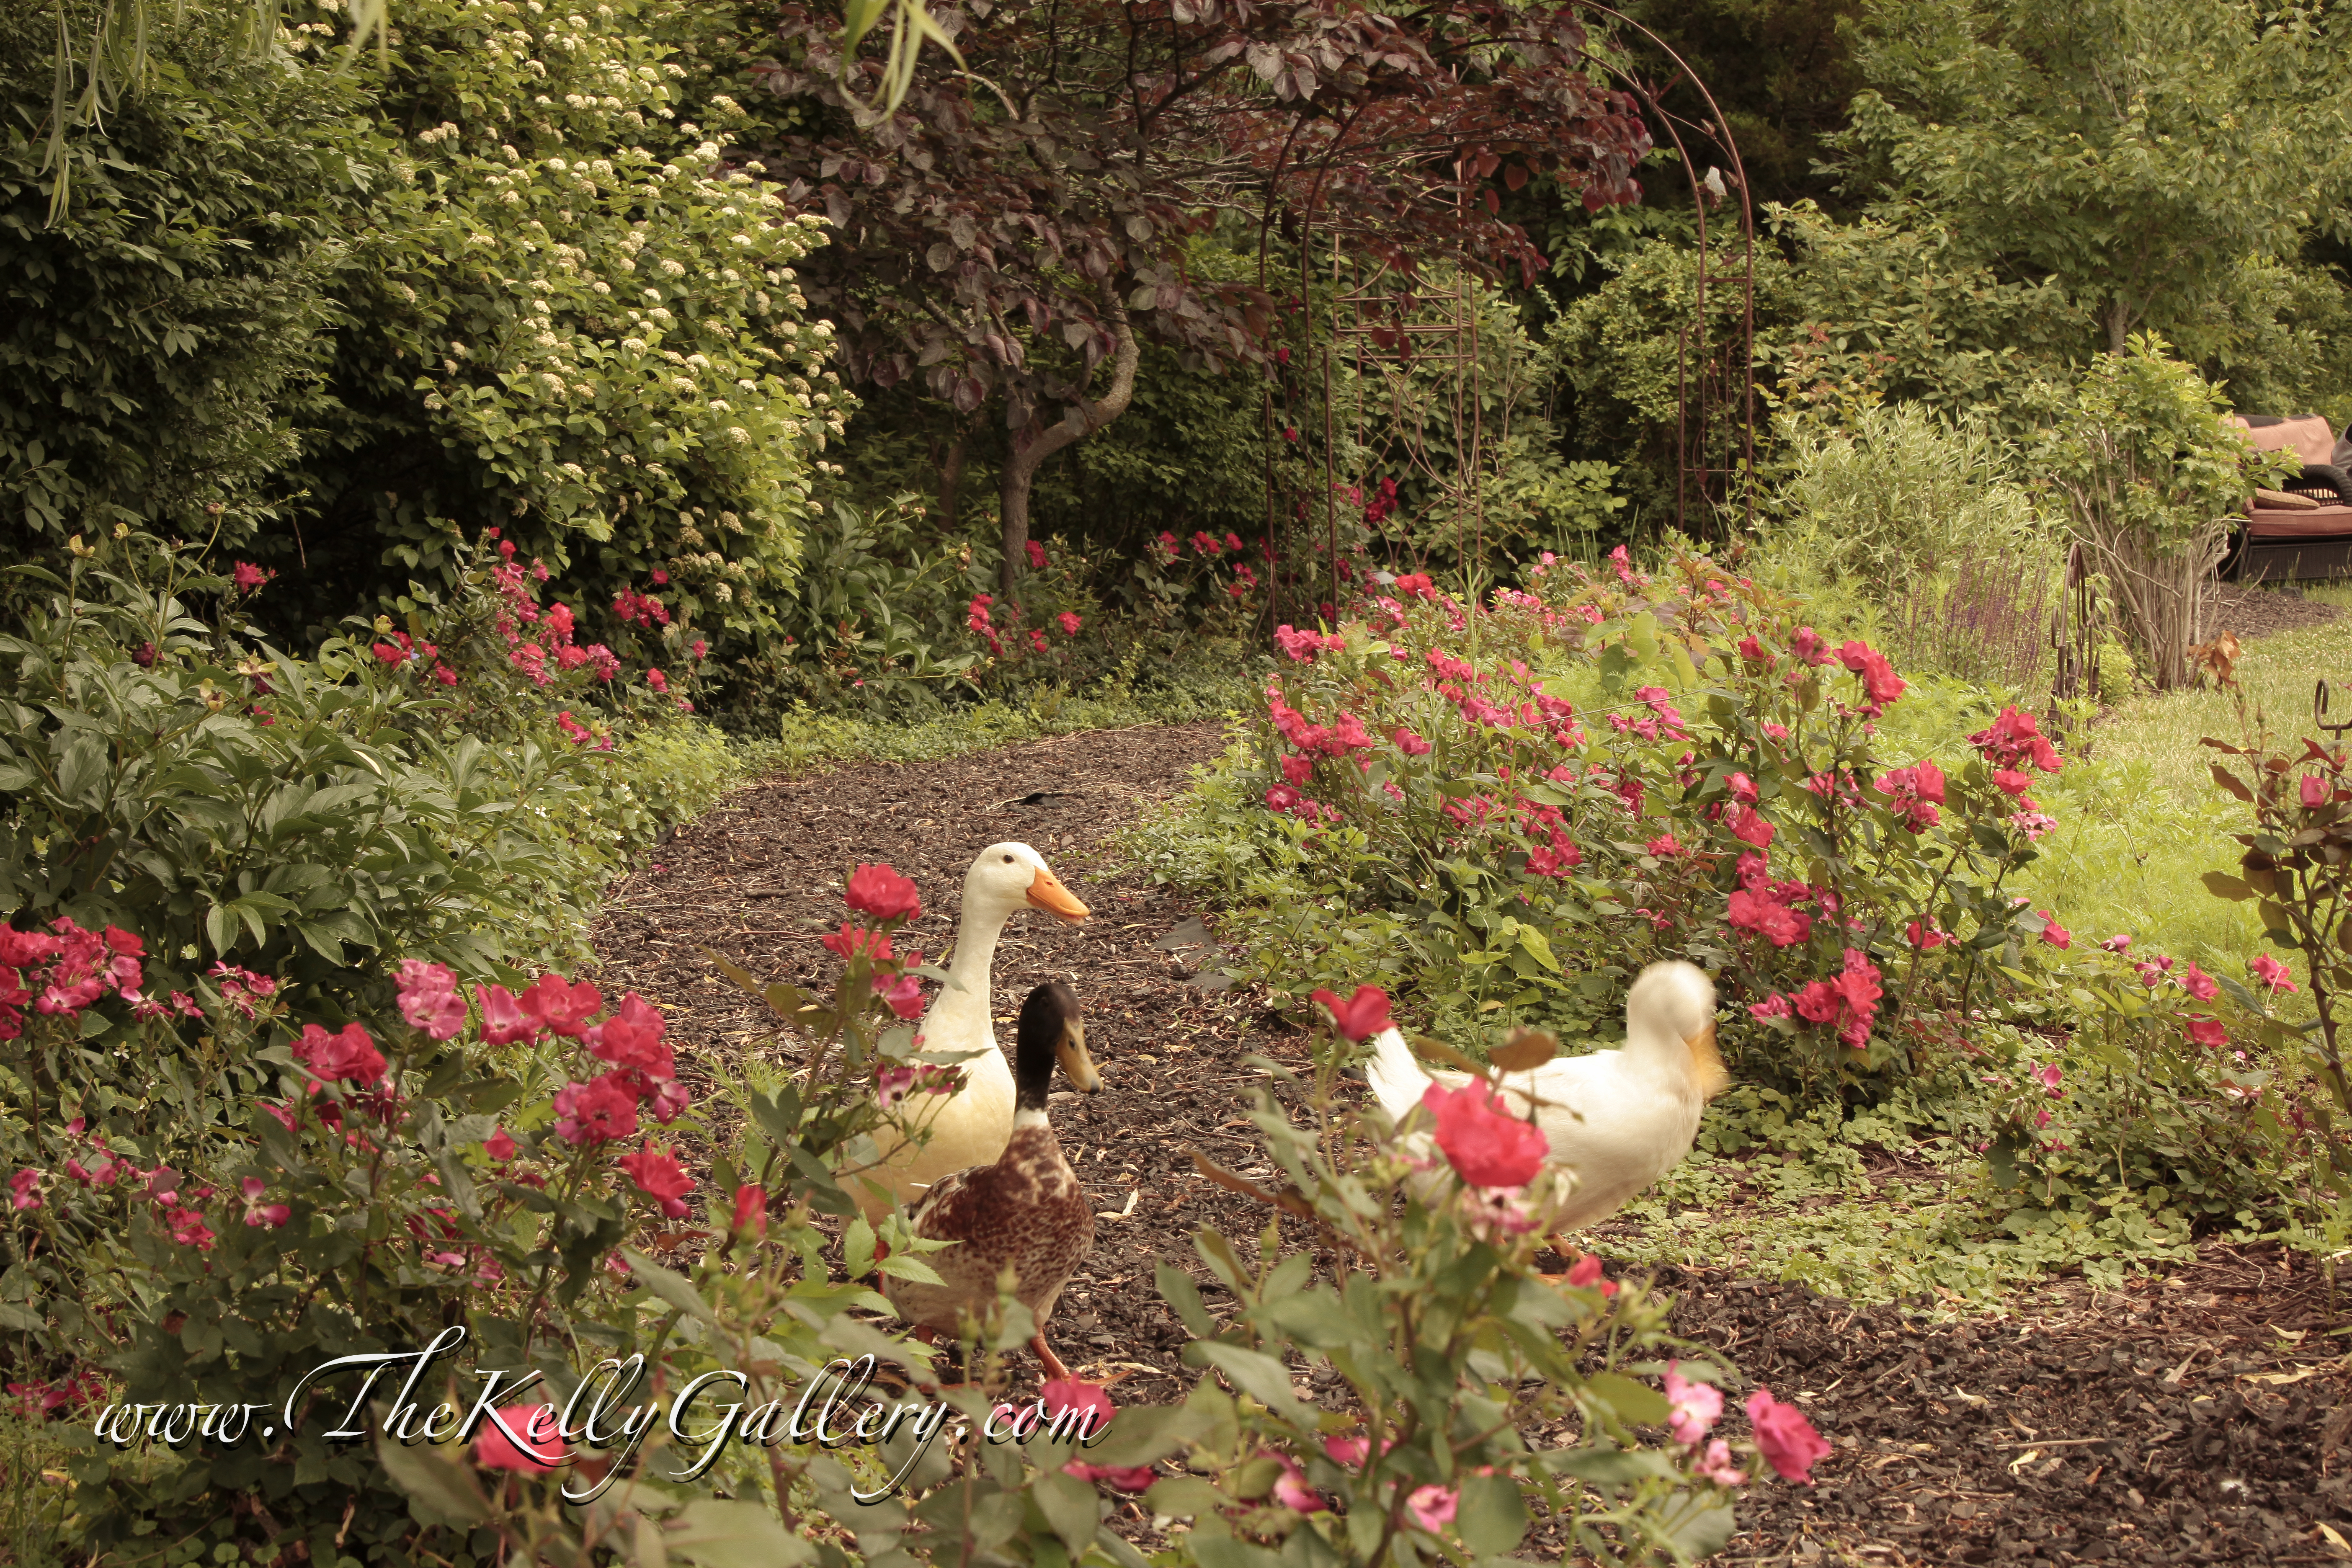 Gallery – The Gardens at The Kelly Gallery